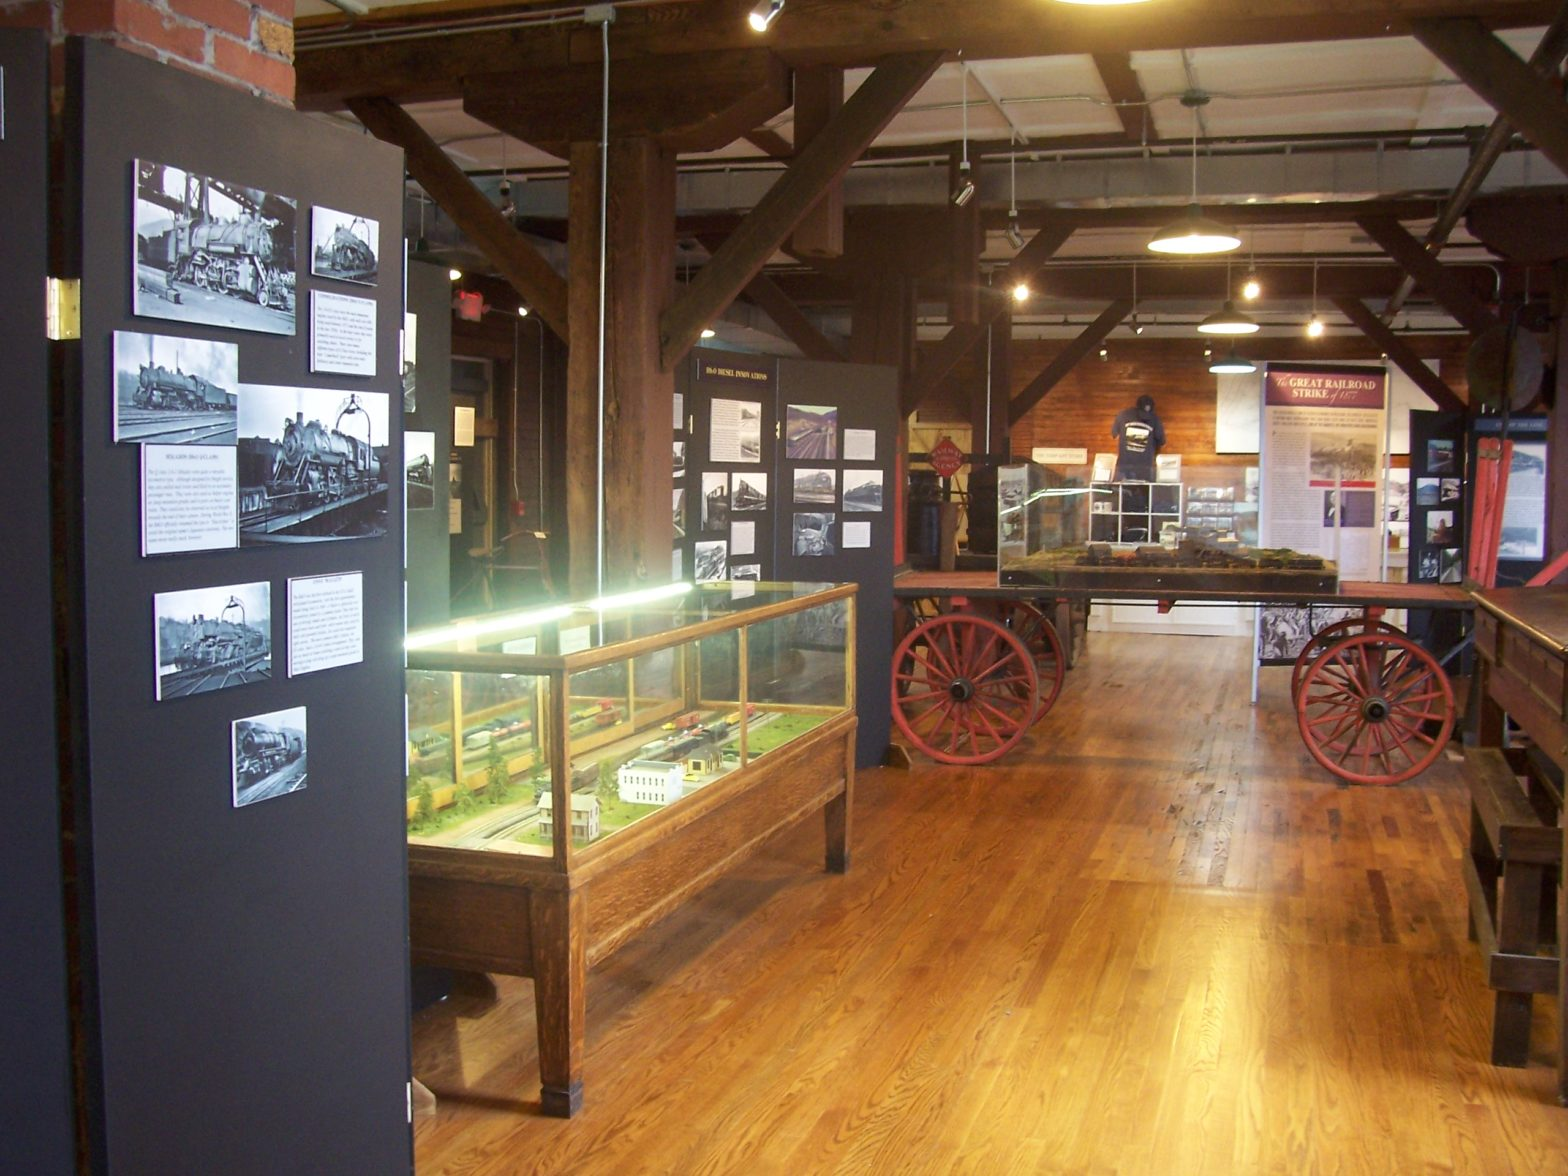 A view of museum exhibits with railroad machinery, cabinets with objects, and exposed Mill architecture.